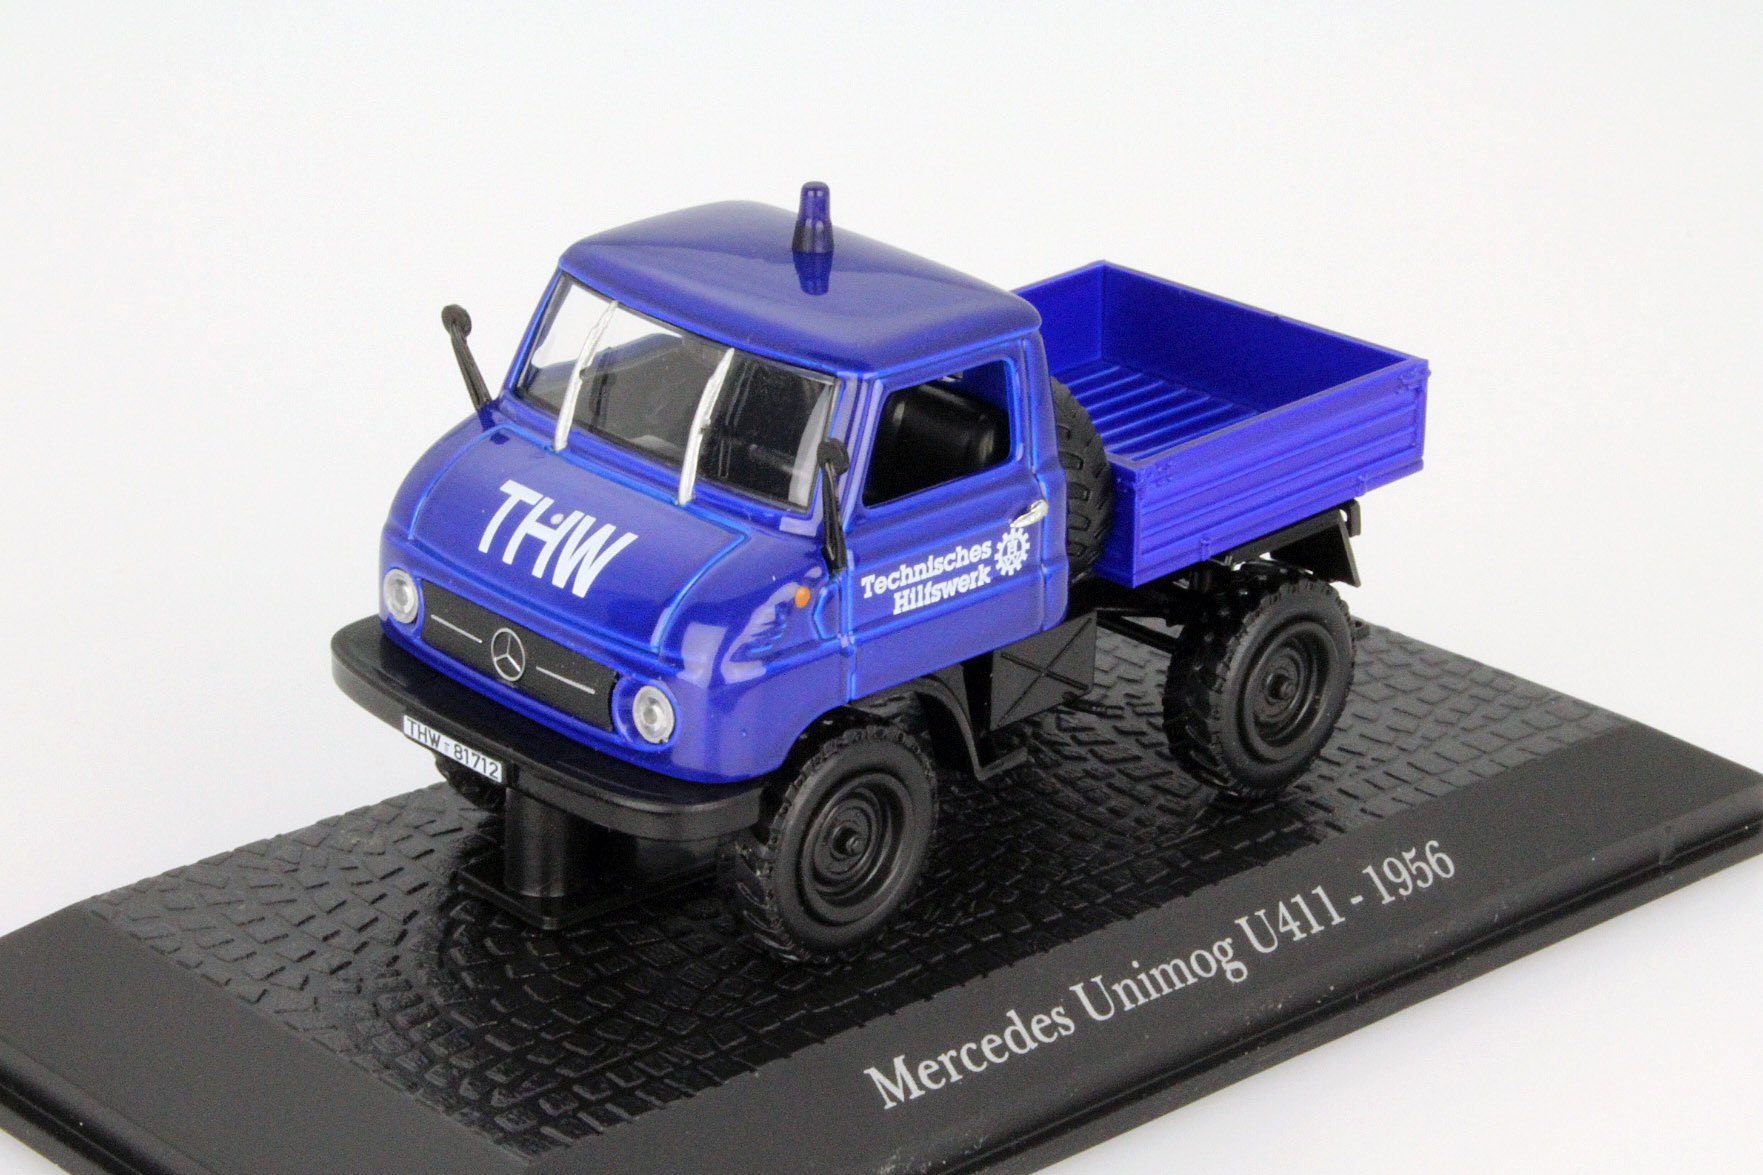 Mercedes-Benz Unimog U411 1956 Blue